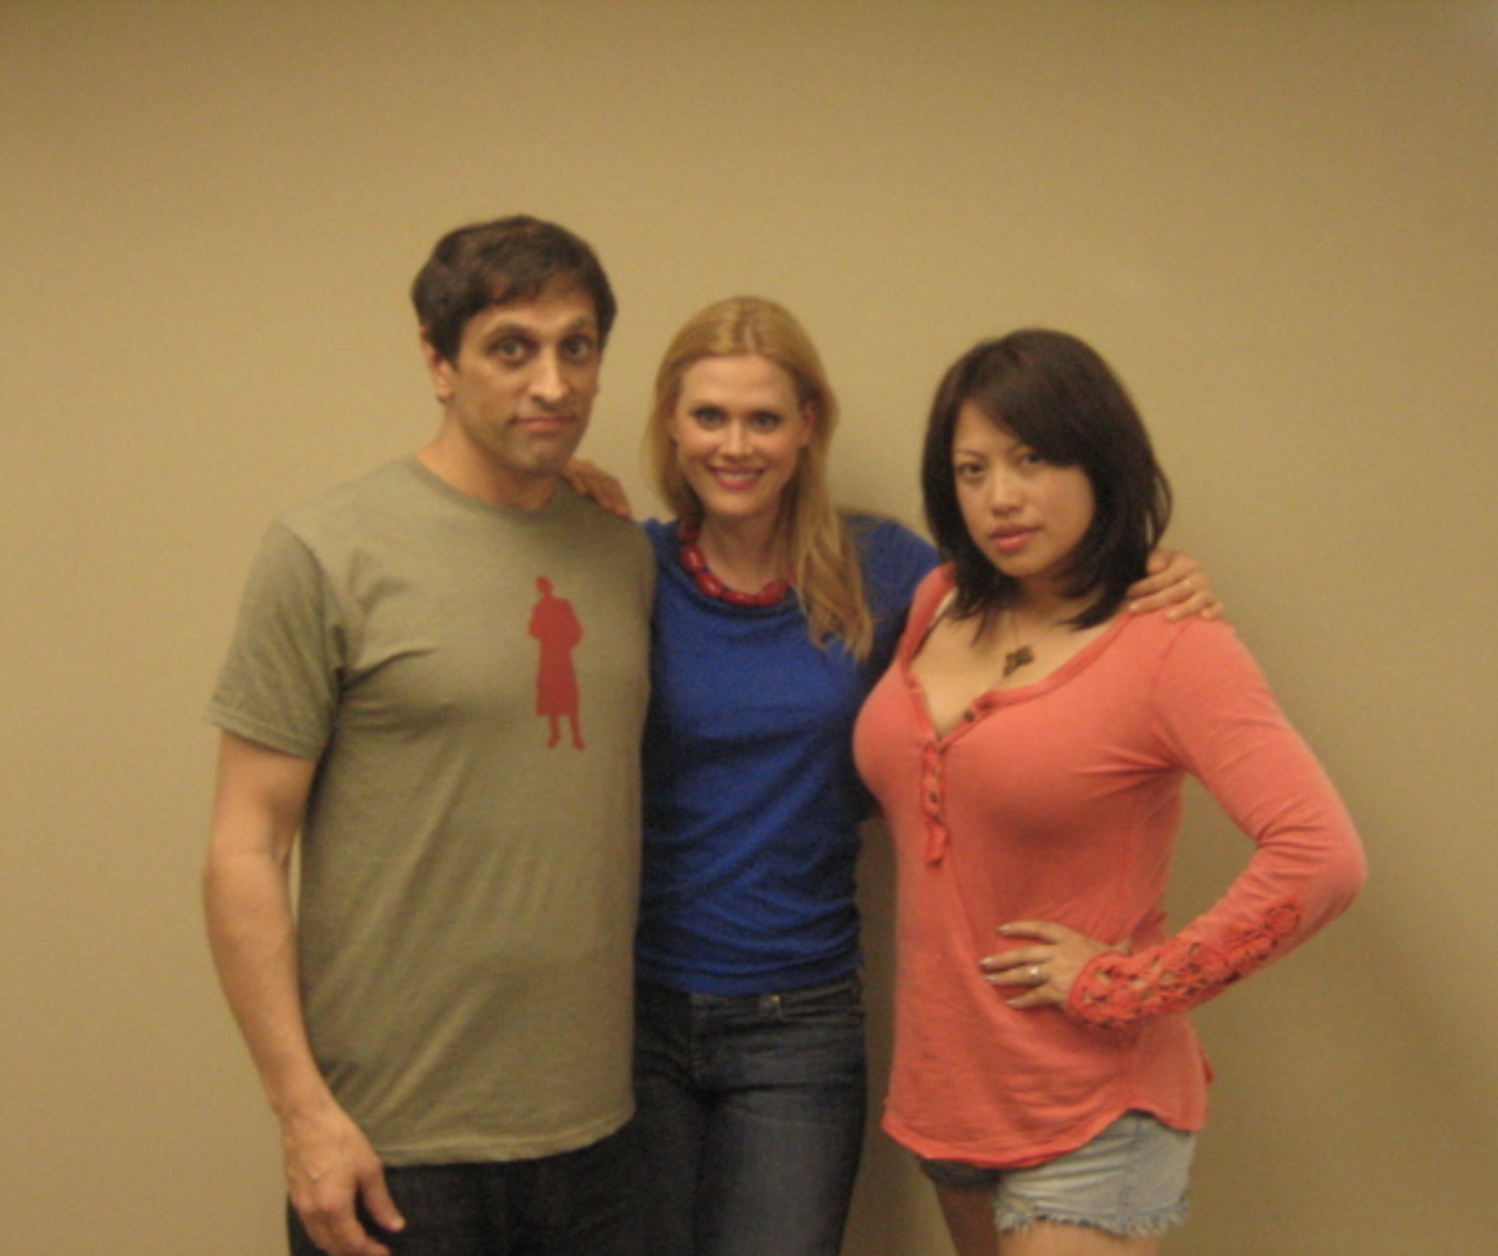 Who Charted?#76 Summah Preview 2012(May 16th, 2012) - If you listen to this episode in anything other than swim trunks and sunglasses, you're doing it wrong! We've got a not-bummah guest with Janet Varney who is helping Wie and Ku with a summah appetizer platter of the Top Summah Team-Up Tours and Most Anticipated Summah Flicks. Before we head out into the summah sunset, we stop by the roulette wheel to get some Judy Moody behind-the-scenes. This episode is best enjoyed with a tall glass of ice cold lemonade!